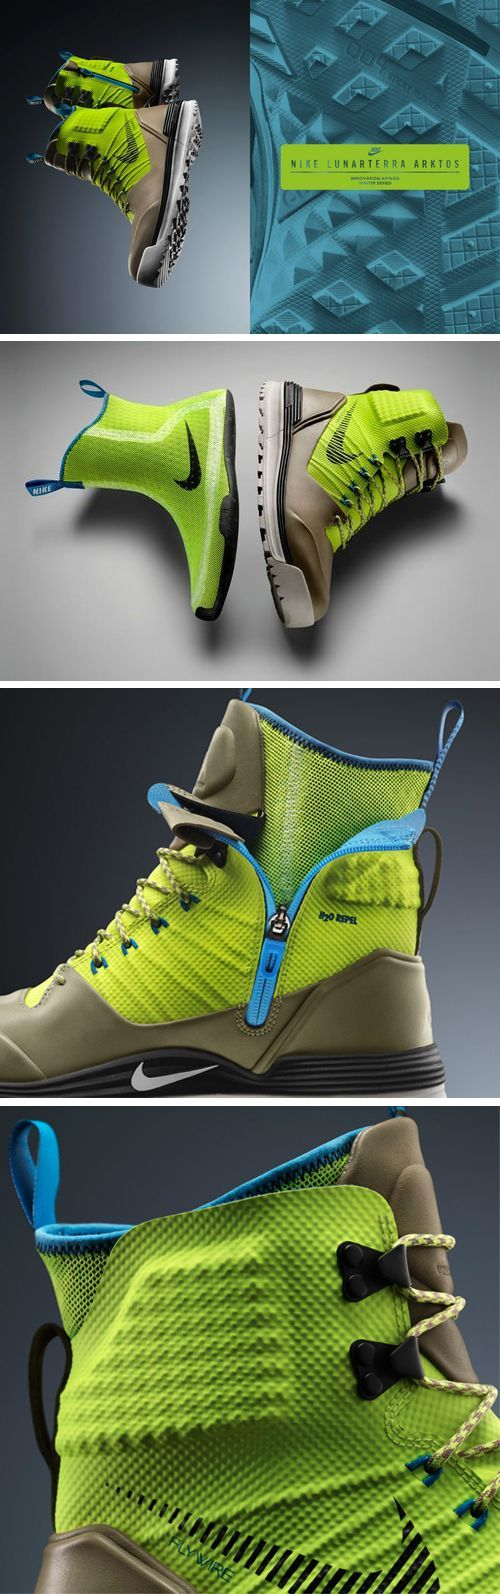 what? Where am I going? And also... What am I supposed to be doing in these? Ummm. Idk and idgaf look at the colors! Gimme! Nike LunarTerra Arktos all weather boot